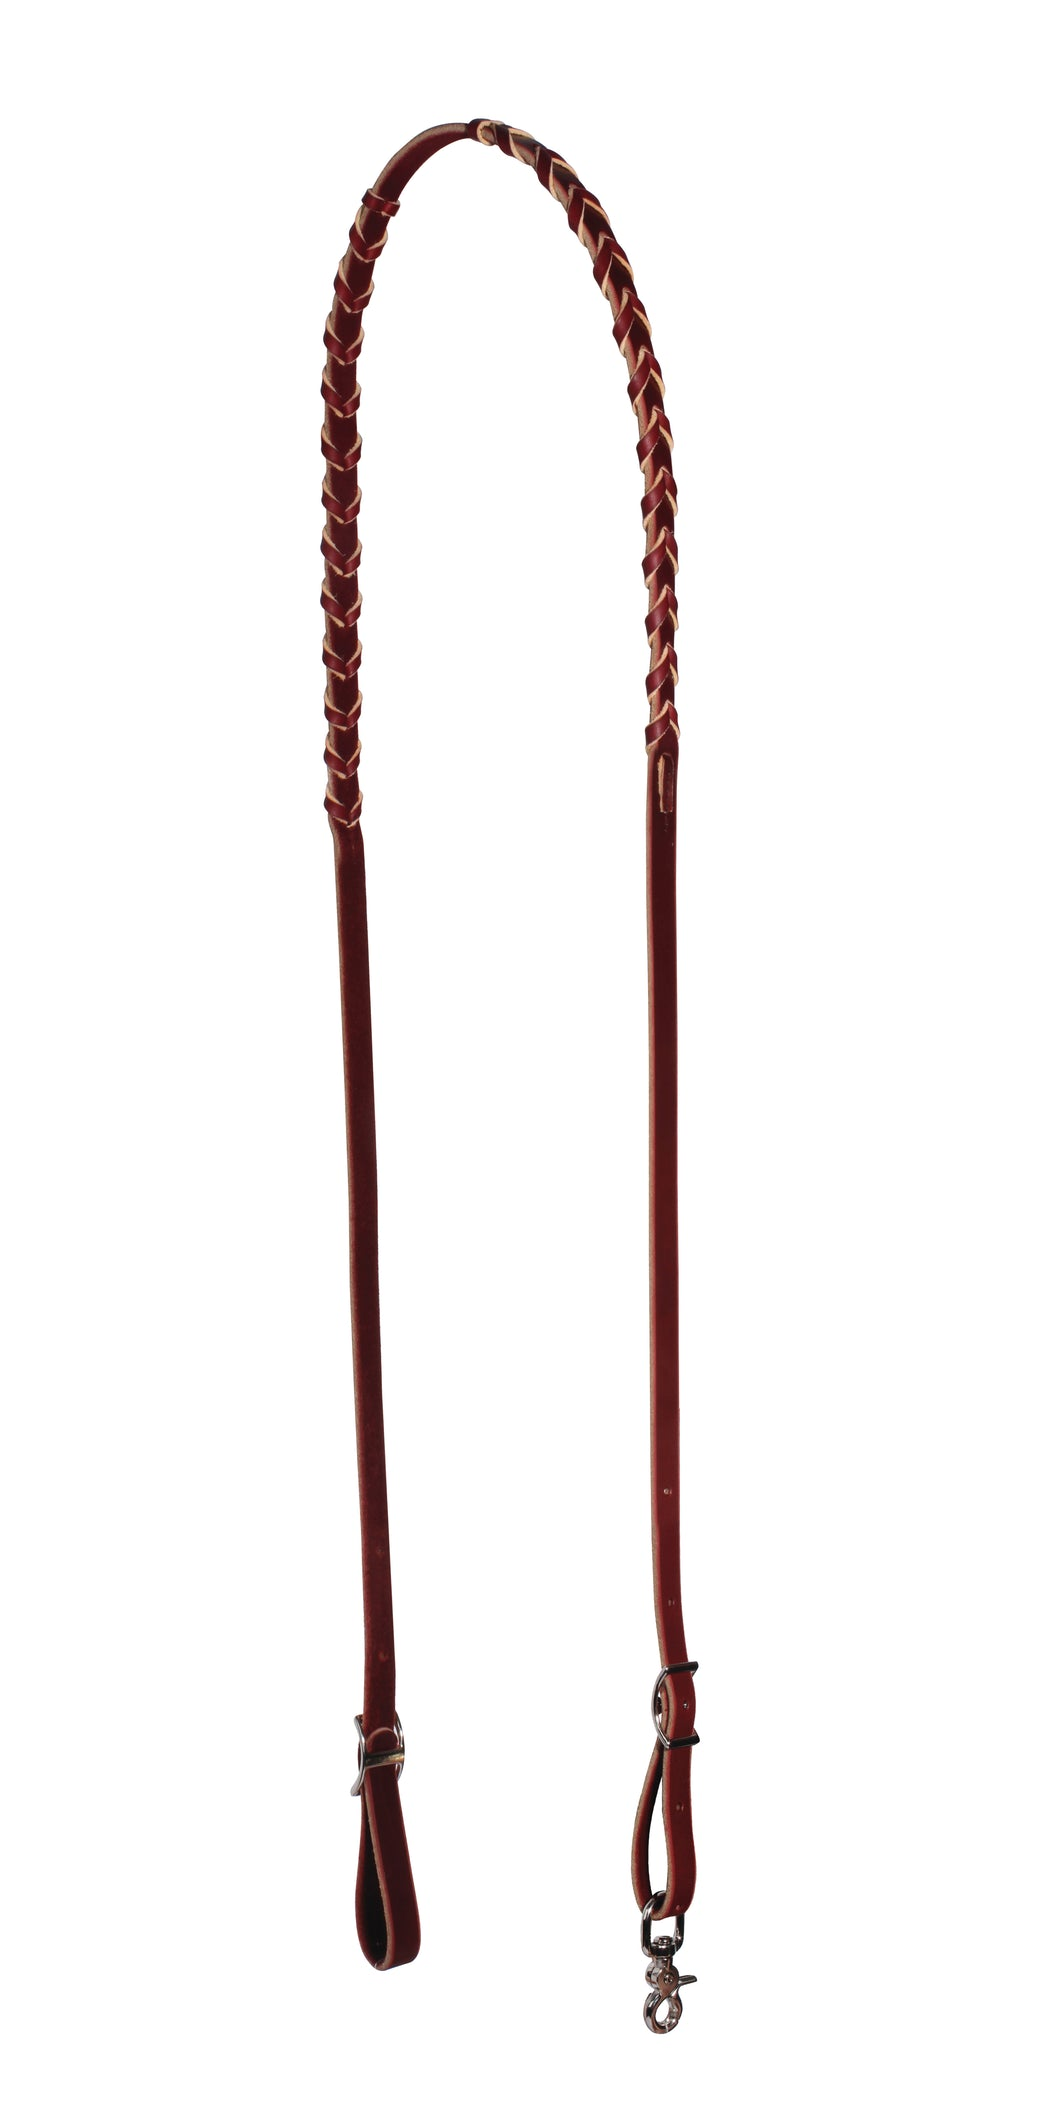 Schutz Leather Laced Barrel Reins